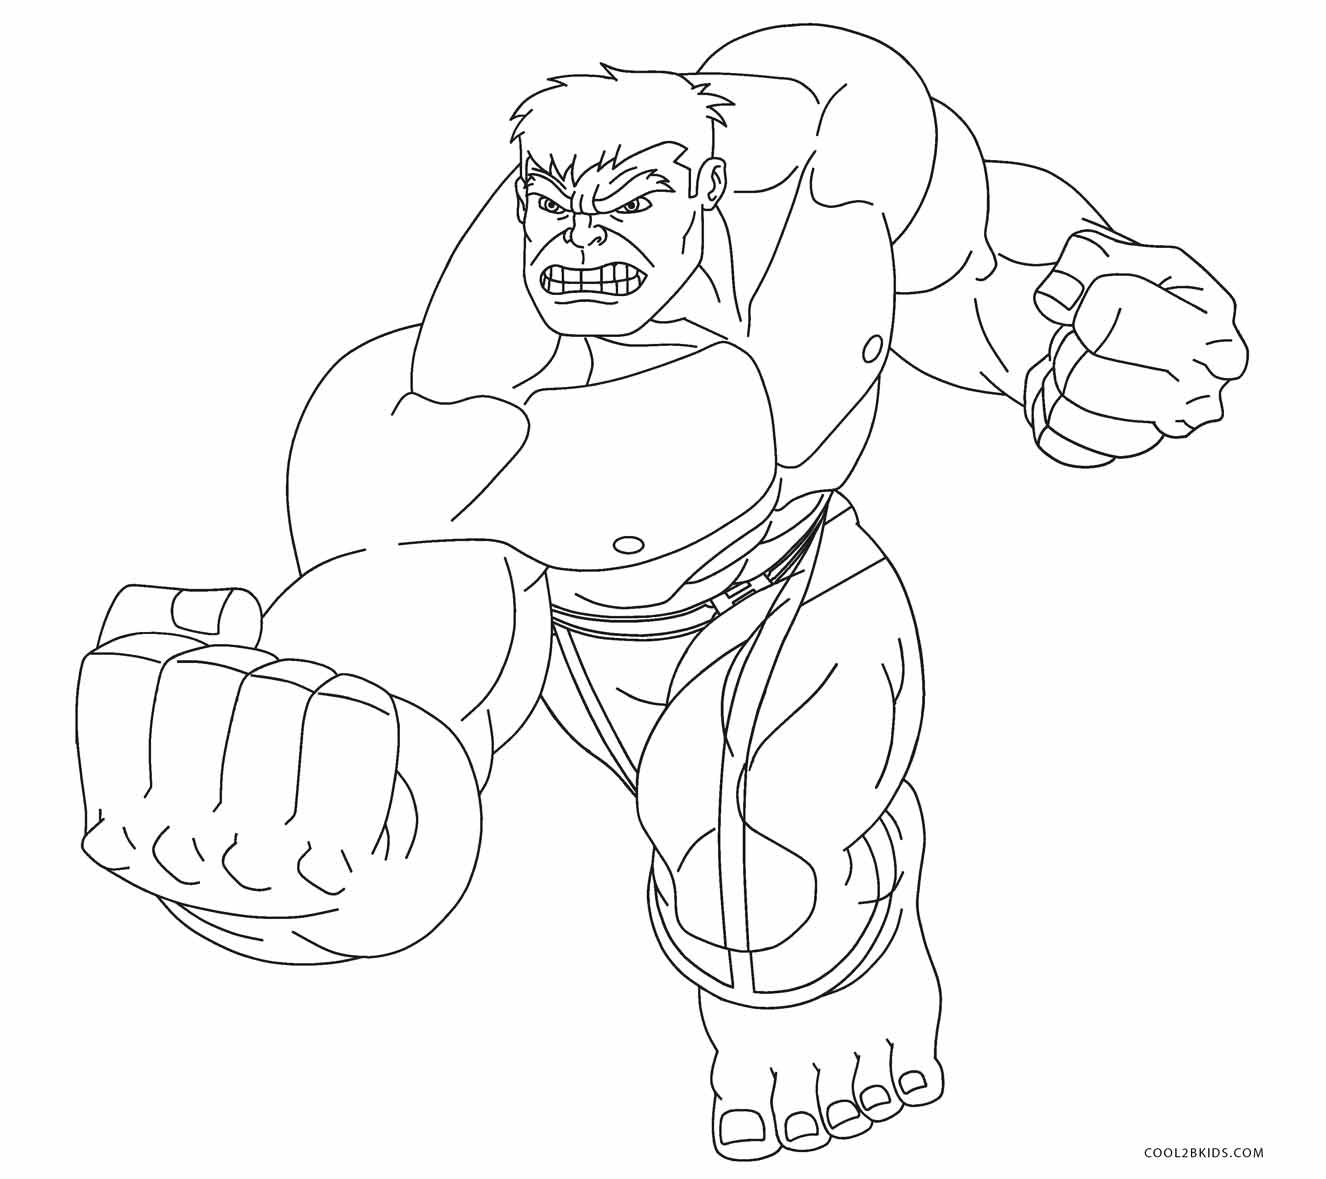 Incredible Hulk Smash Coloring Pages